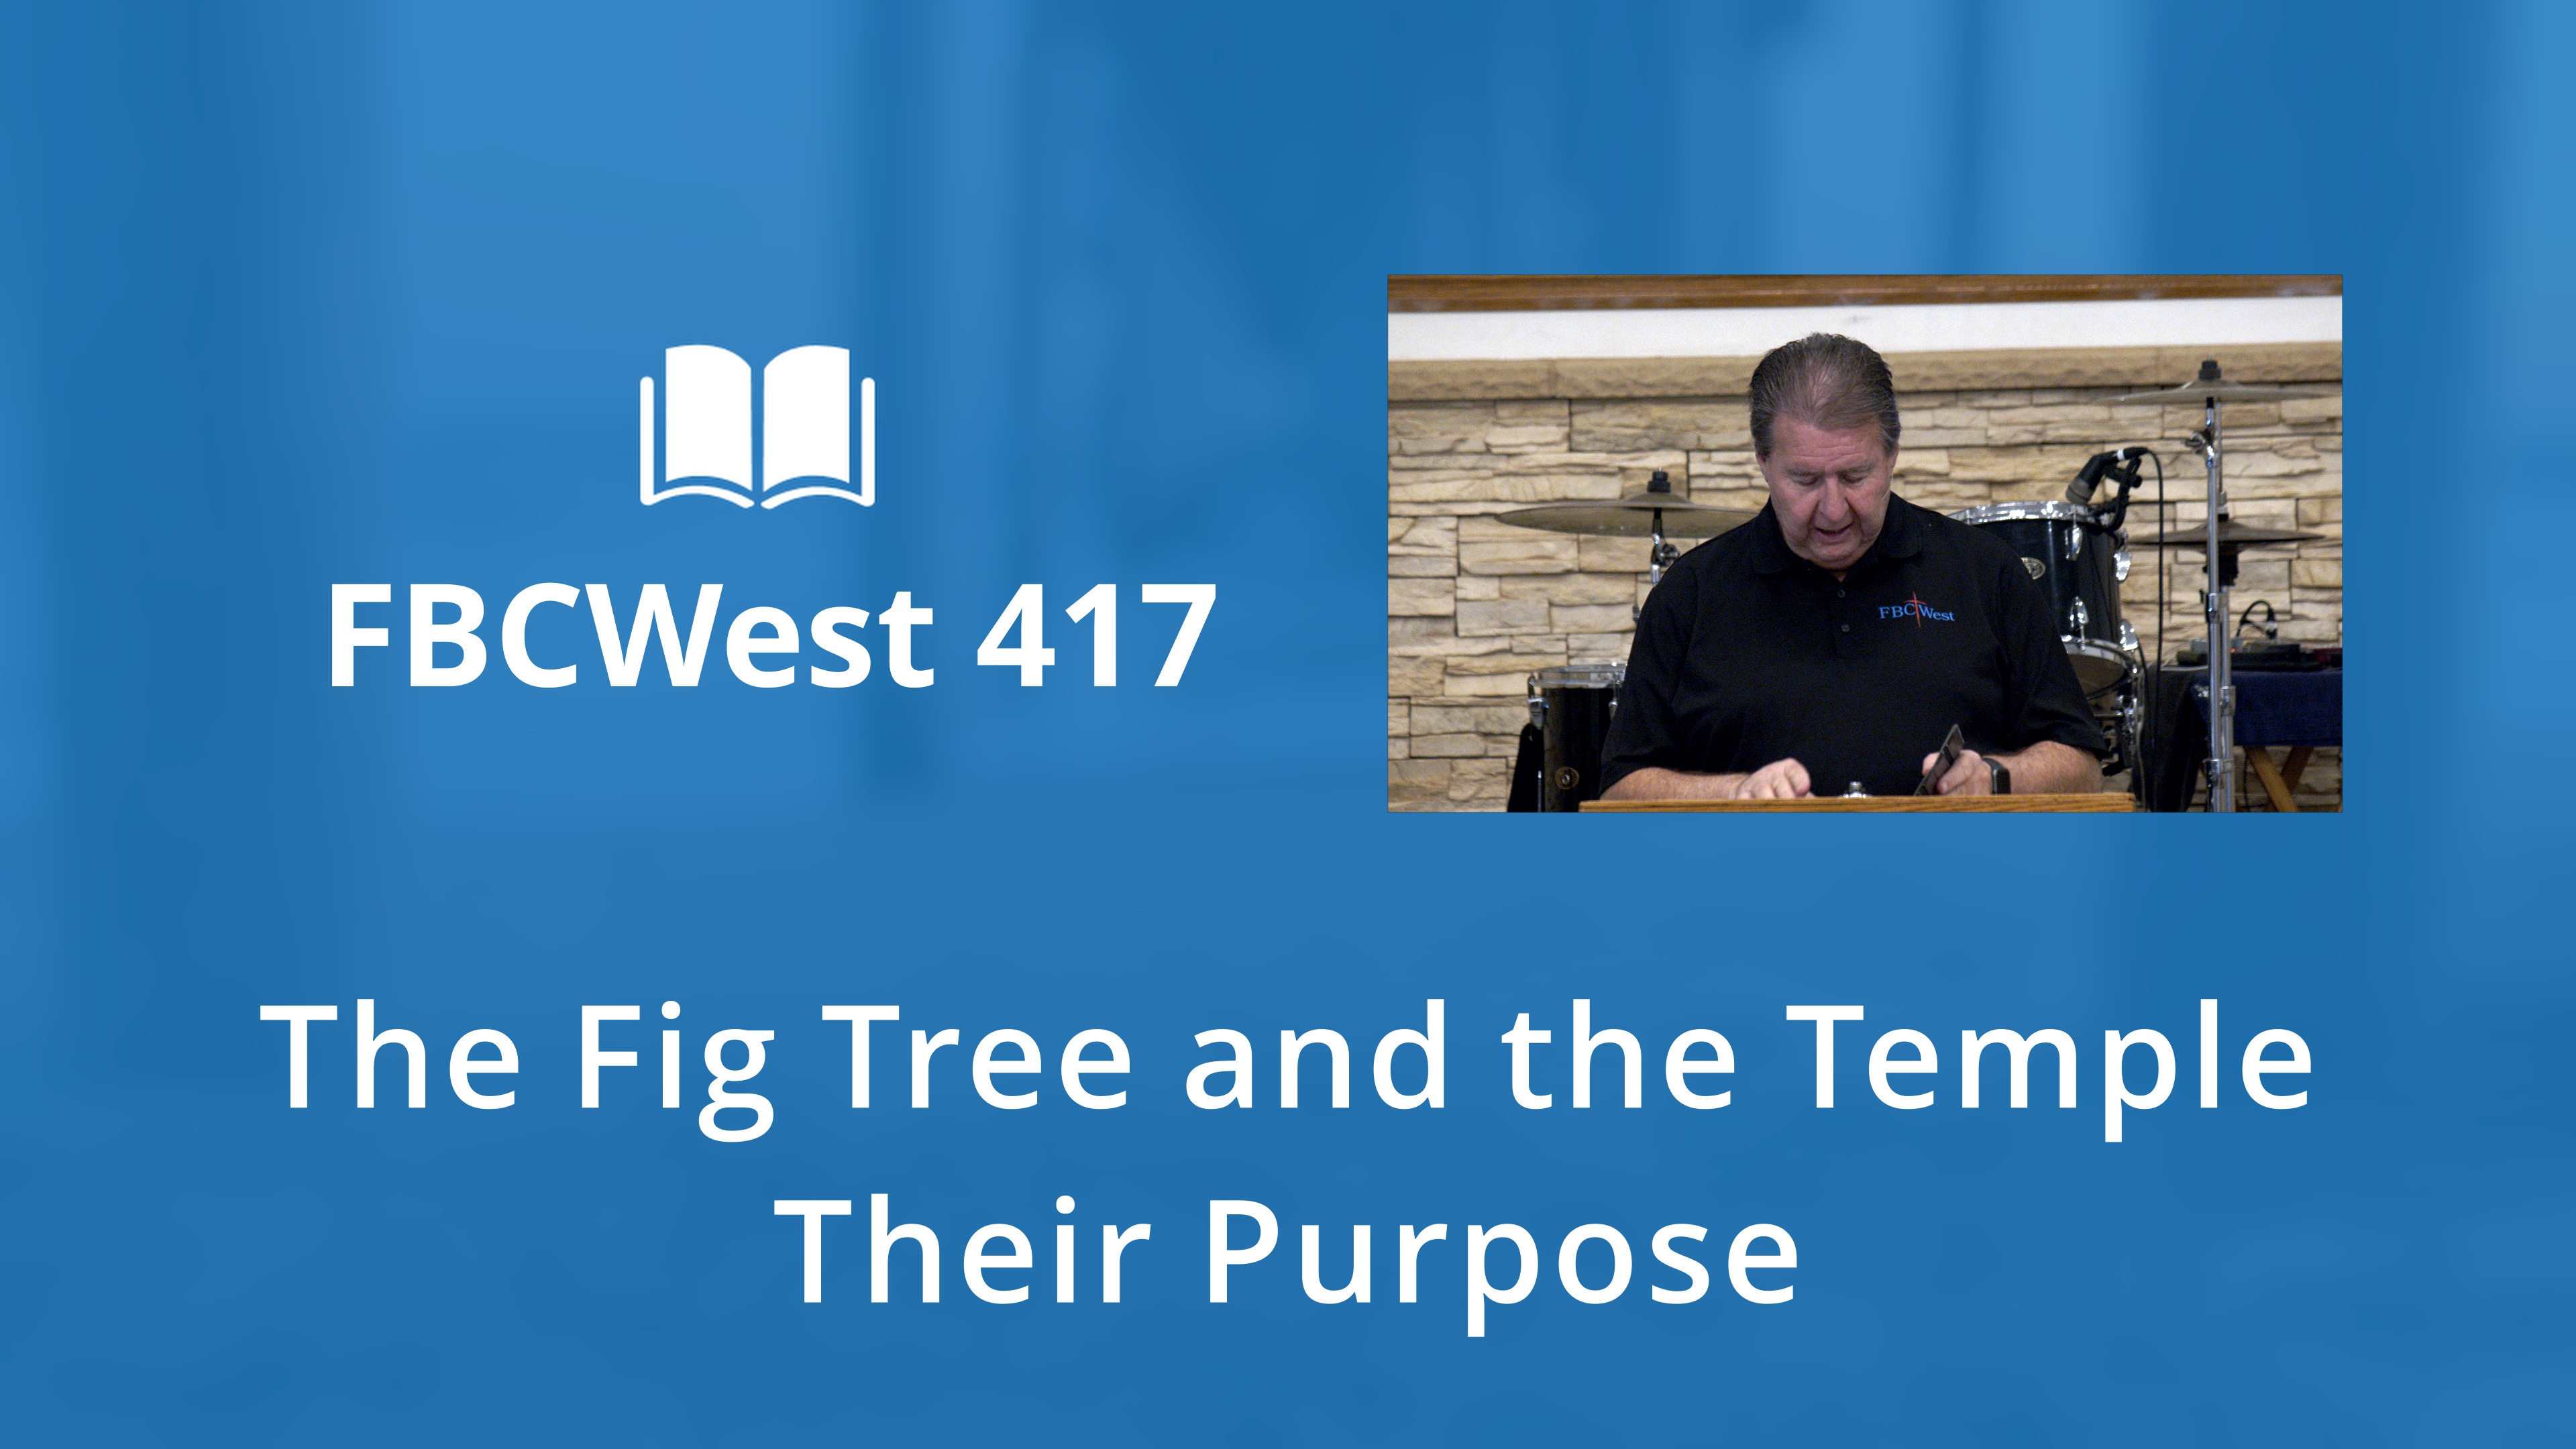 417 FBCWest | The Fig Tree and the Temple - Their Purpose photo poster